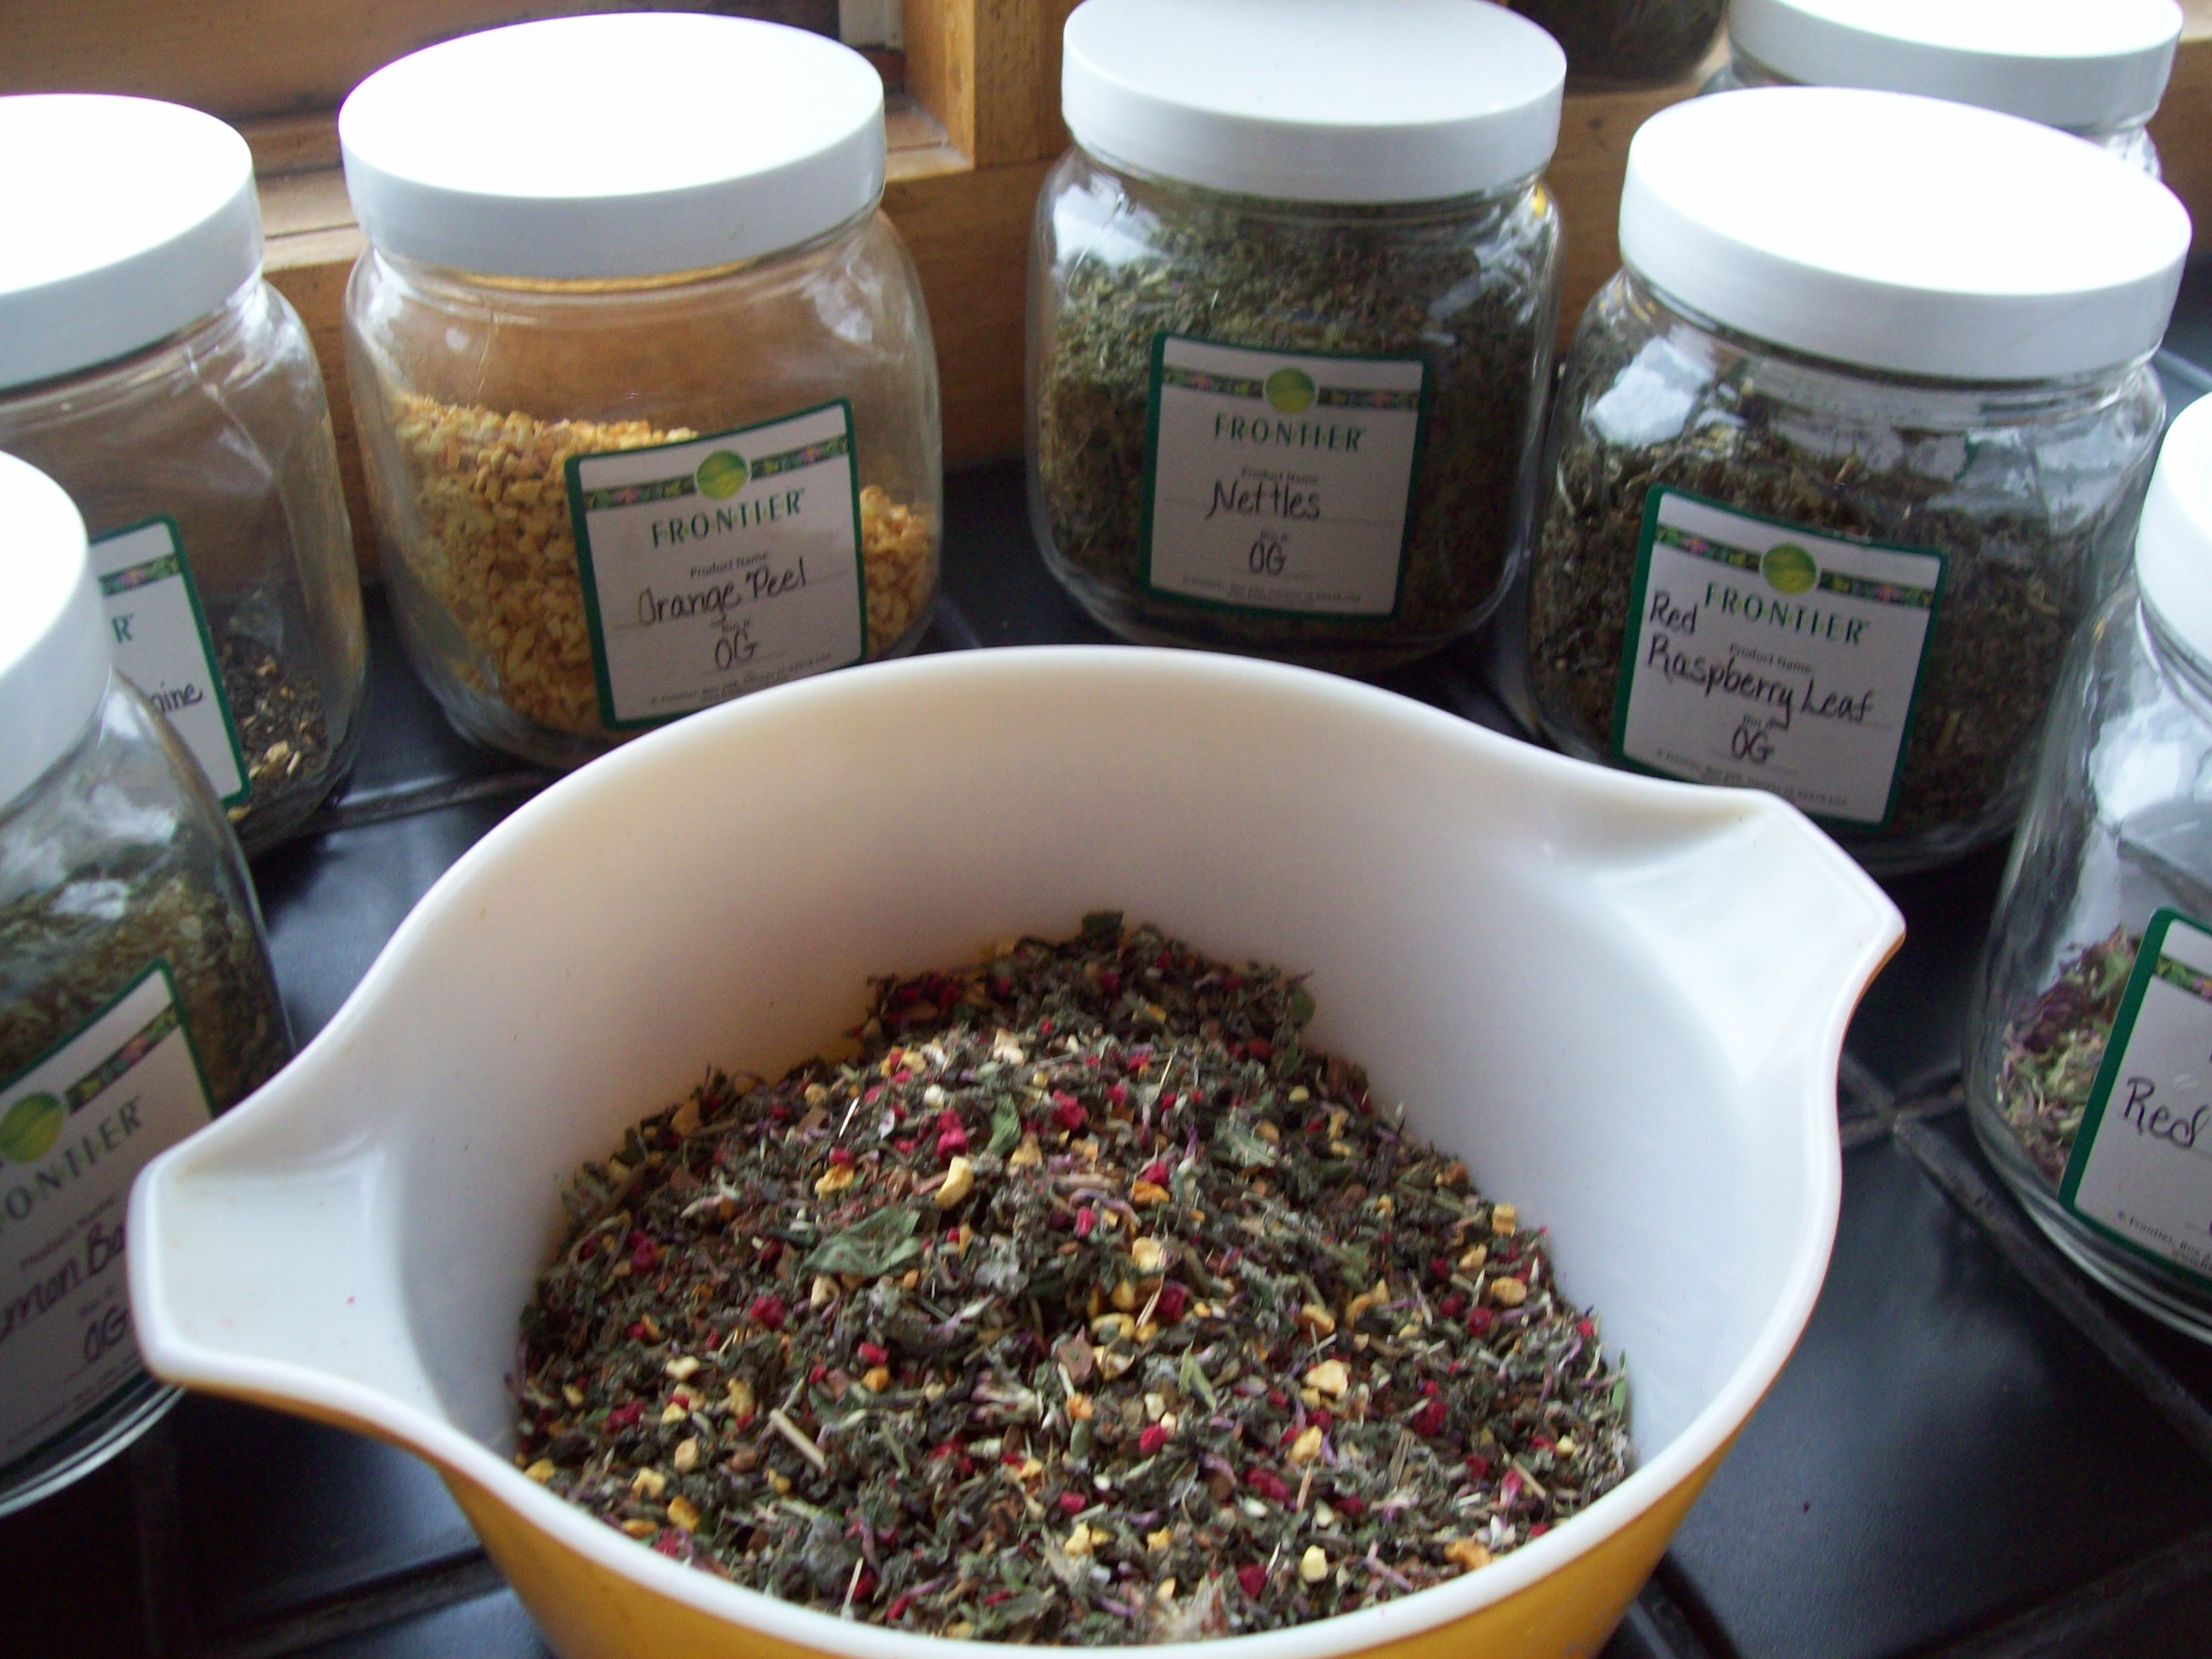 Mixing up tea for packaging and for me!